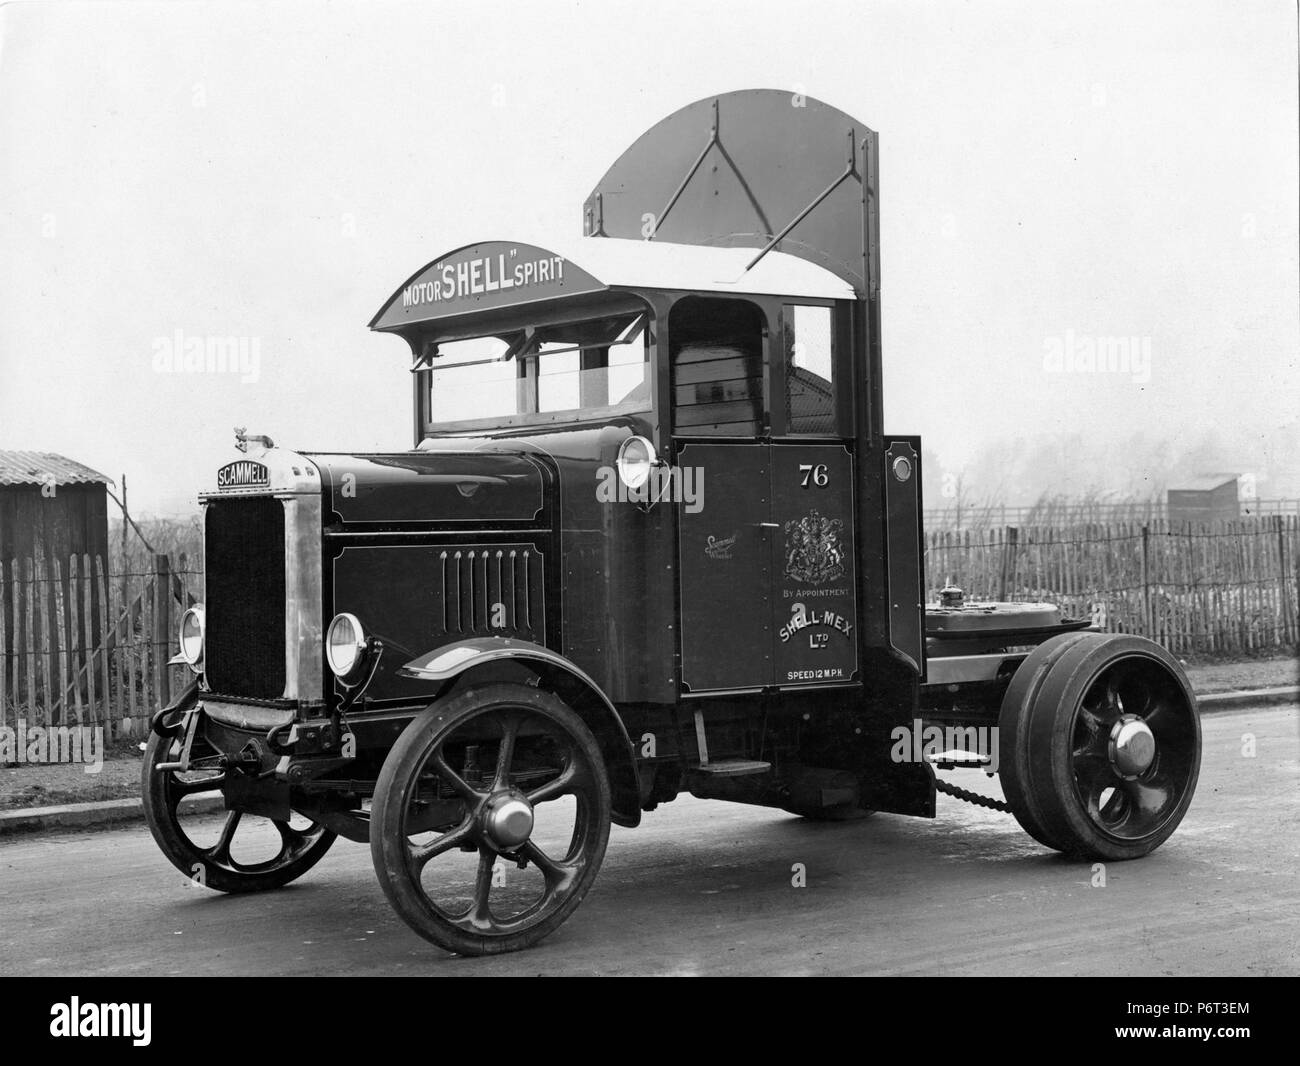 1928 Scammell tractor for Shell - Stock Image